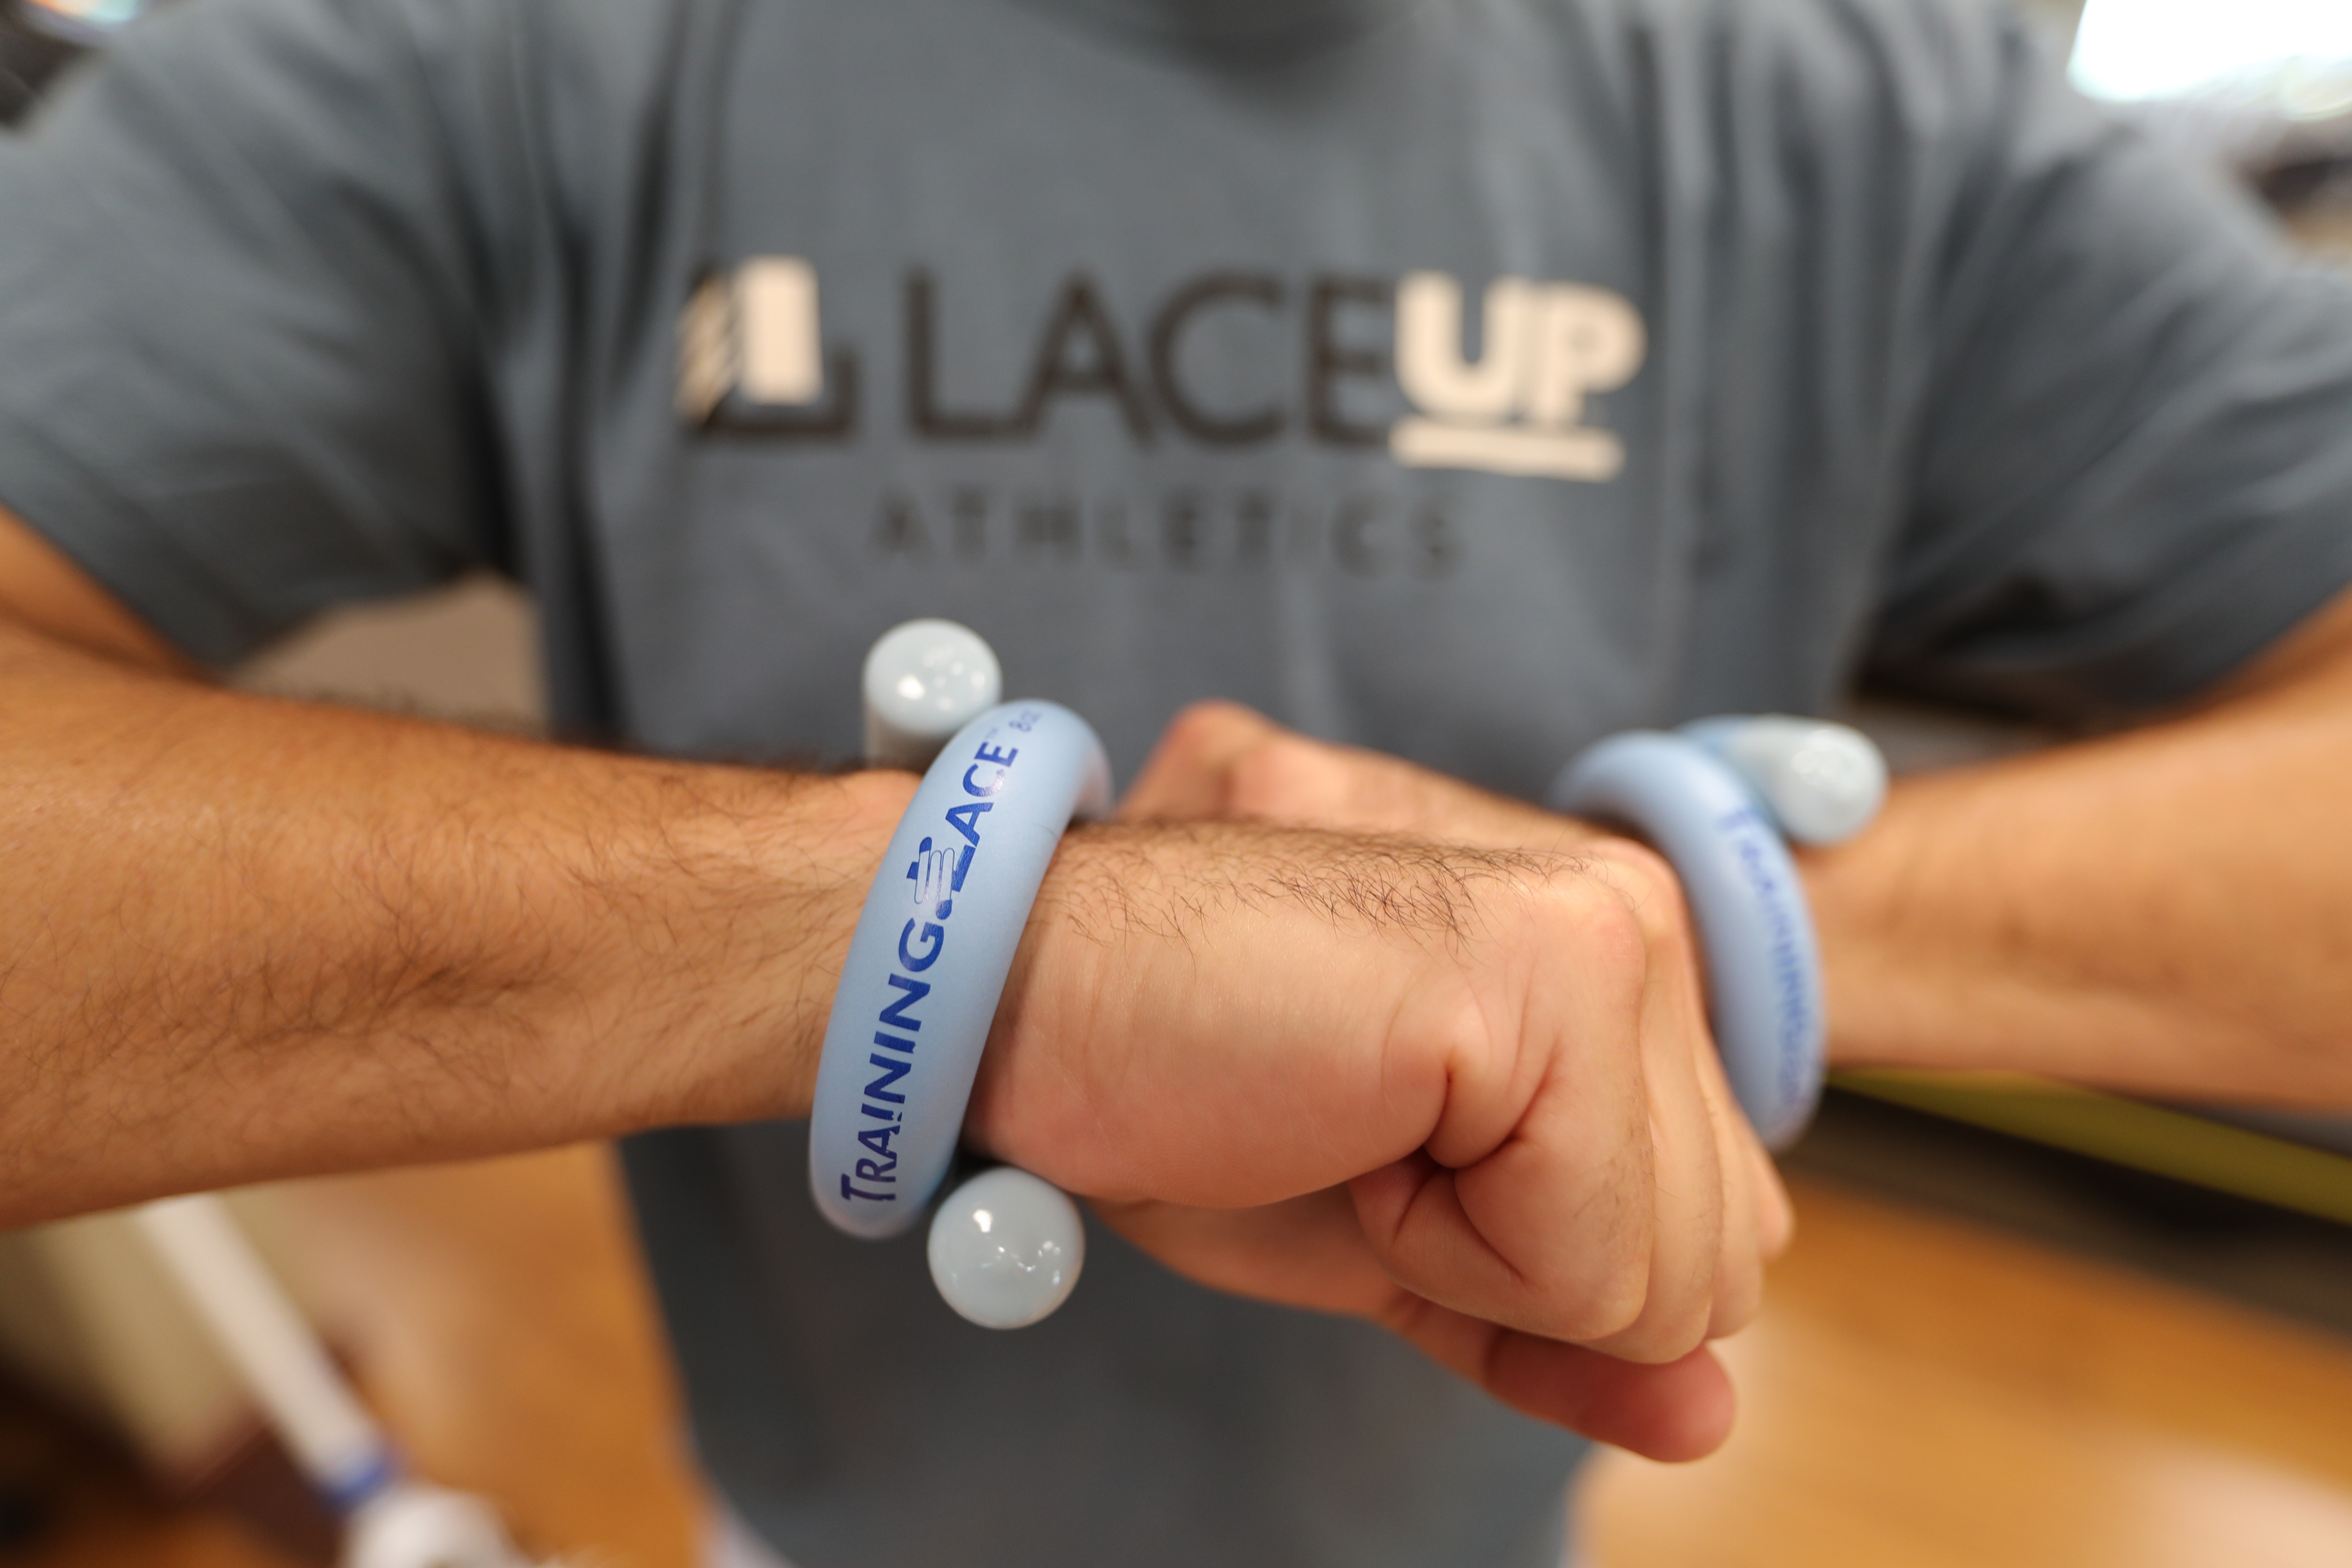 Jay Ciccarone wears a LaceUp weight. LaceUp -- thin, tubular, bendable, foam-based weights is designed for lacrosse sticks and are now also marketing for baseball and swimming, among other sports, and even physical therapy. DAVID SWANSON / Staff Photographer